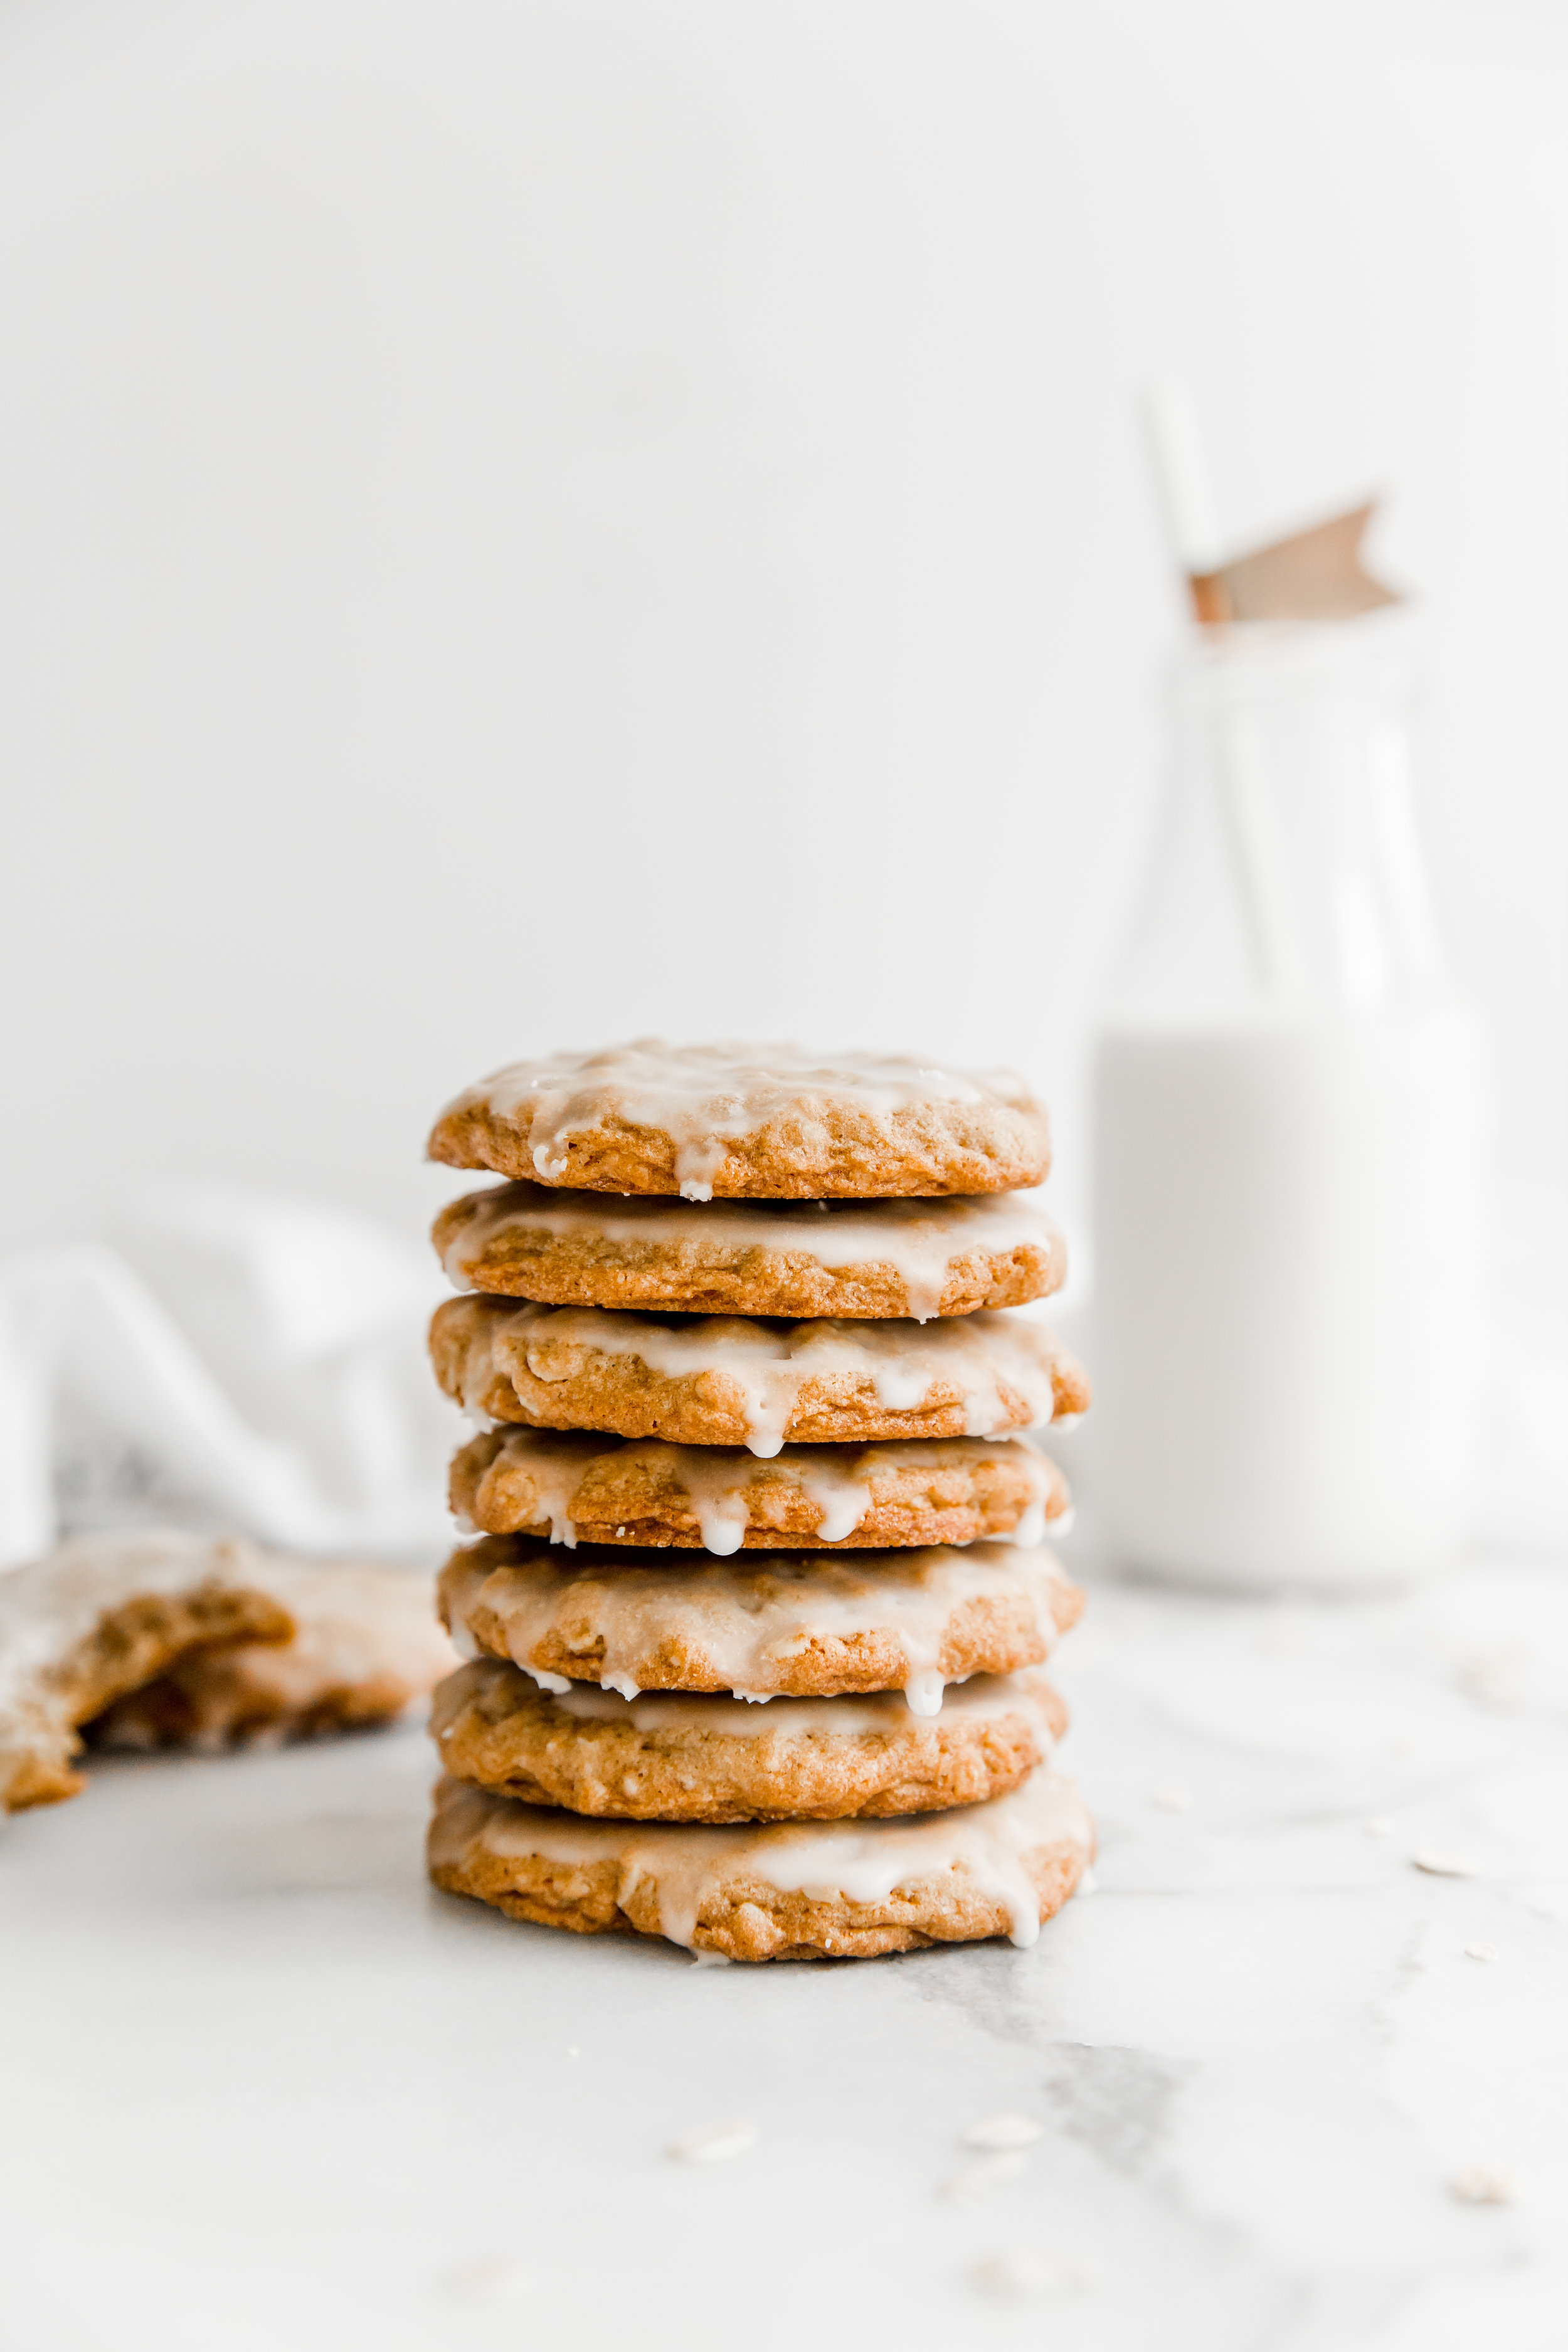 Iced Maple Oatmeal Cookies || To Salt & See. These perfectly fall-inspired cookies are easy to make and are a crowd pleaser! They are flavored with maple syrup, cinnamon, and nutmeg - and topped with a maple, powdered sugar icing. These are the perfect treat to enjoy on an overcast, crisp day.